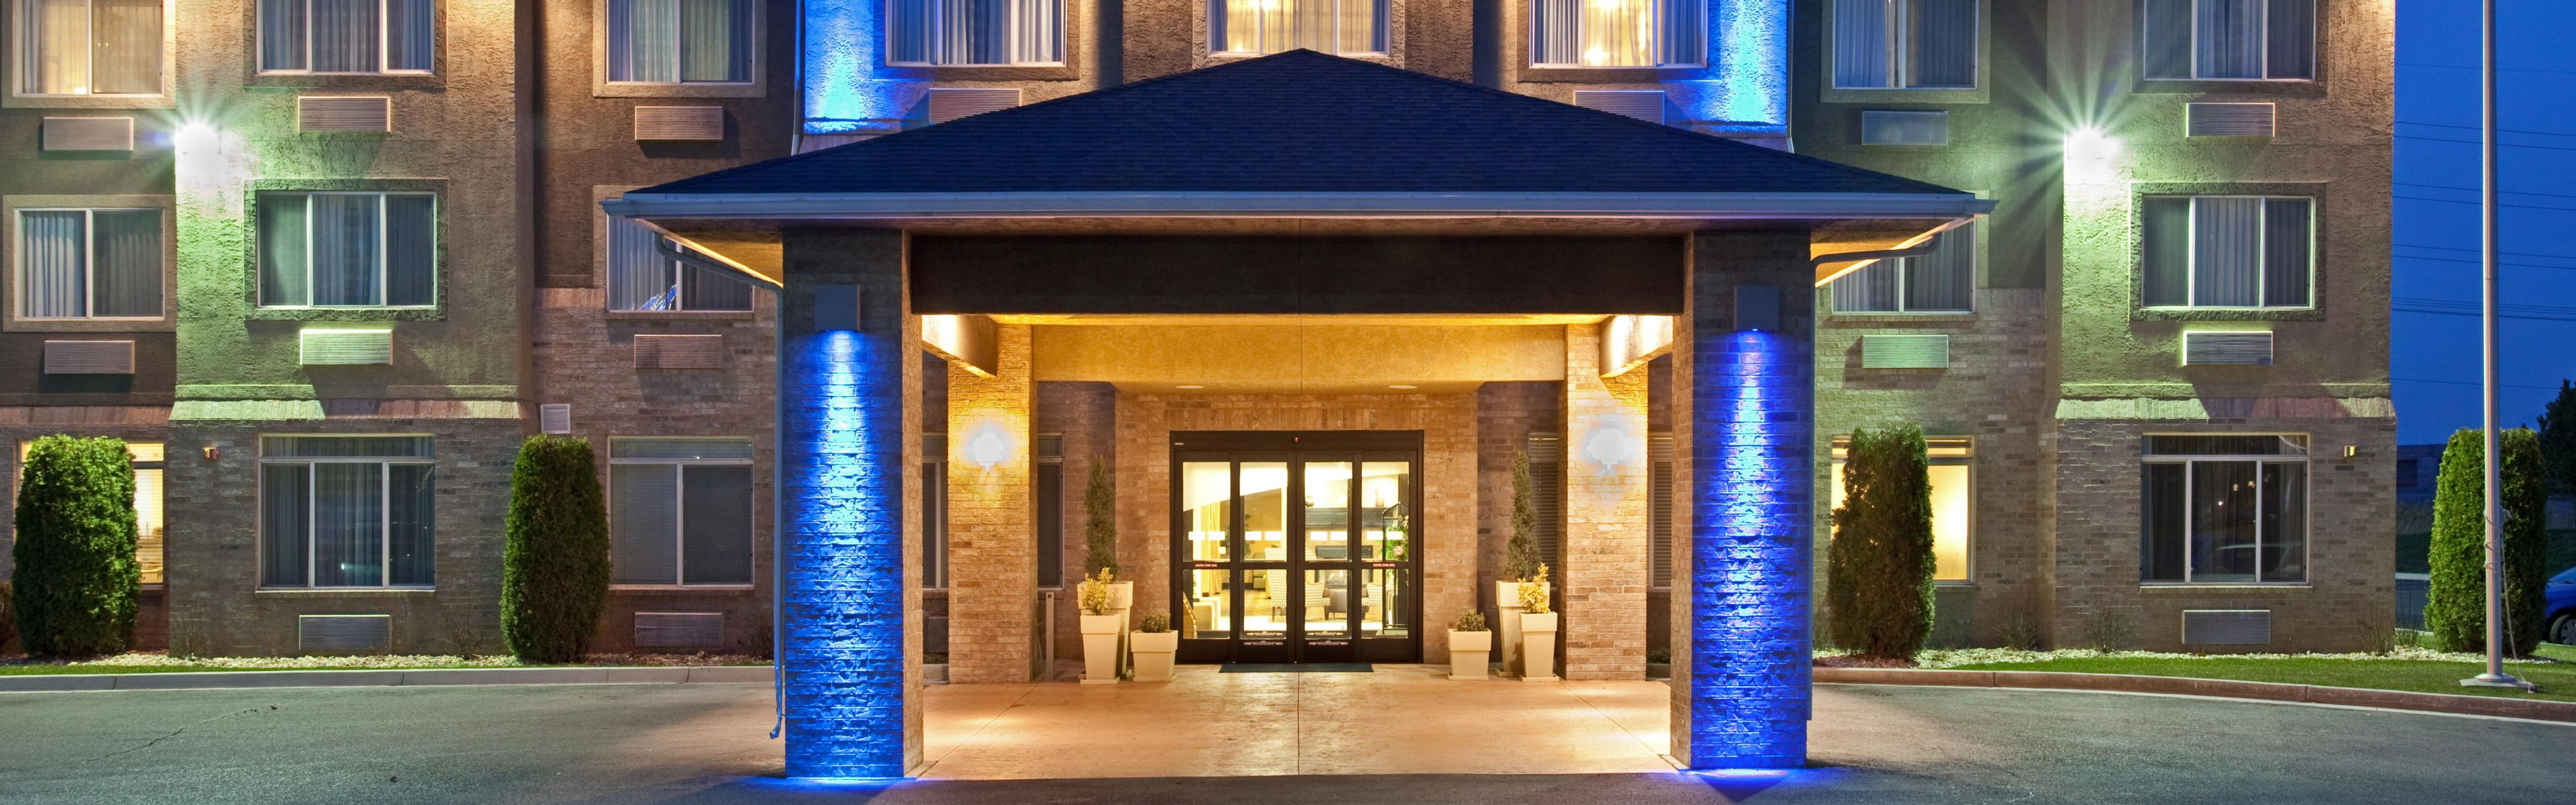 Holiday Inn Express & Suites American Fork- North Provo image 0